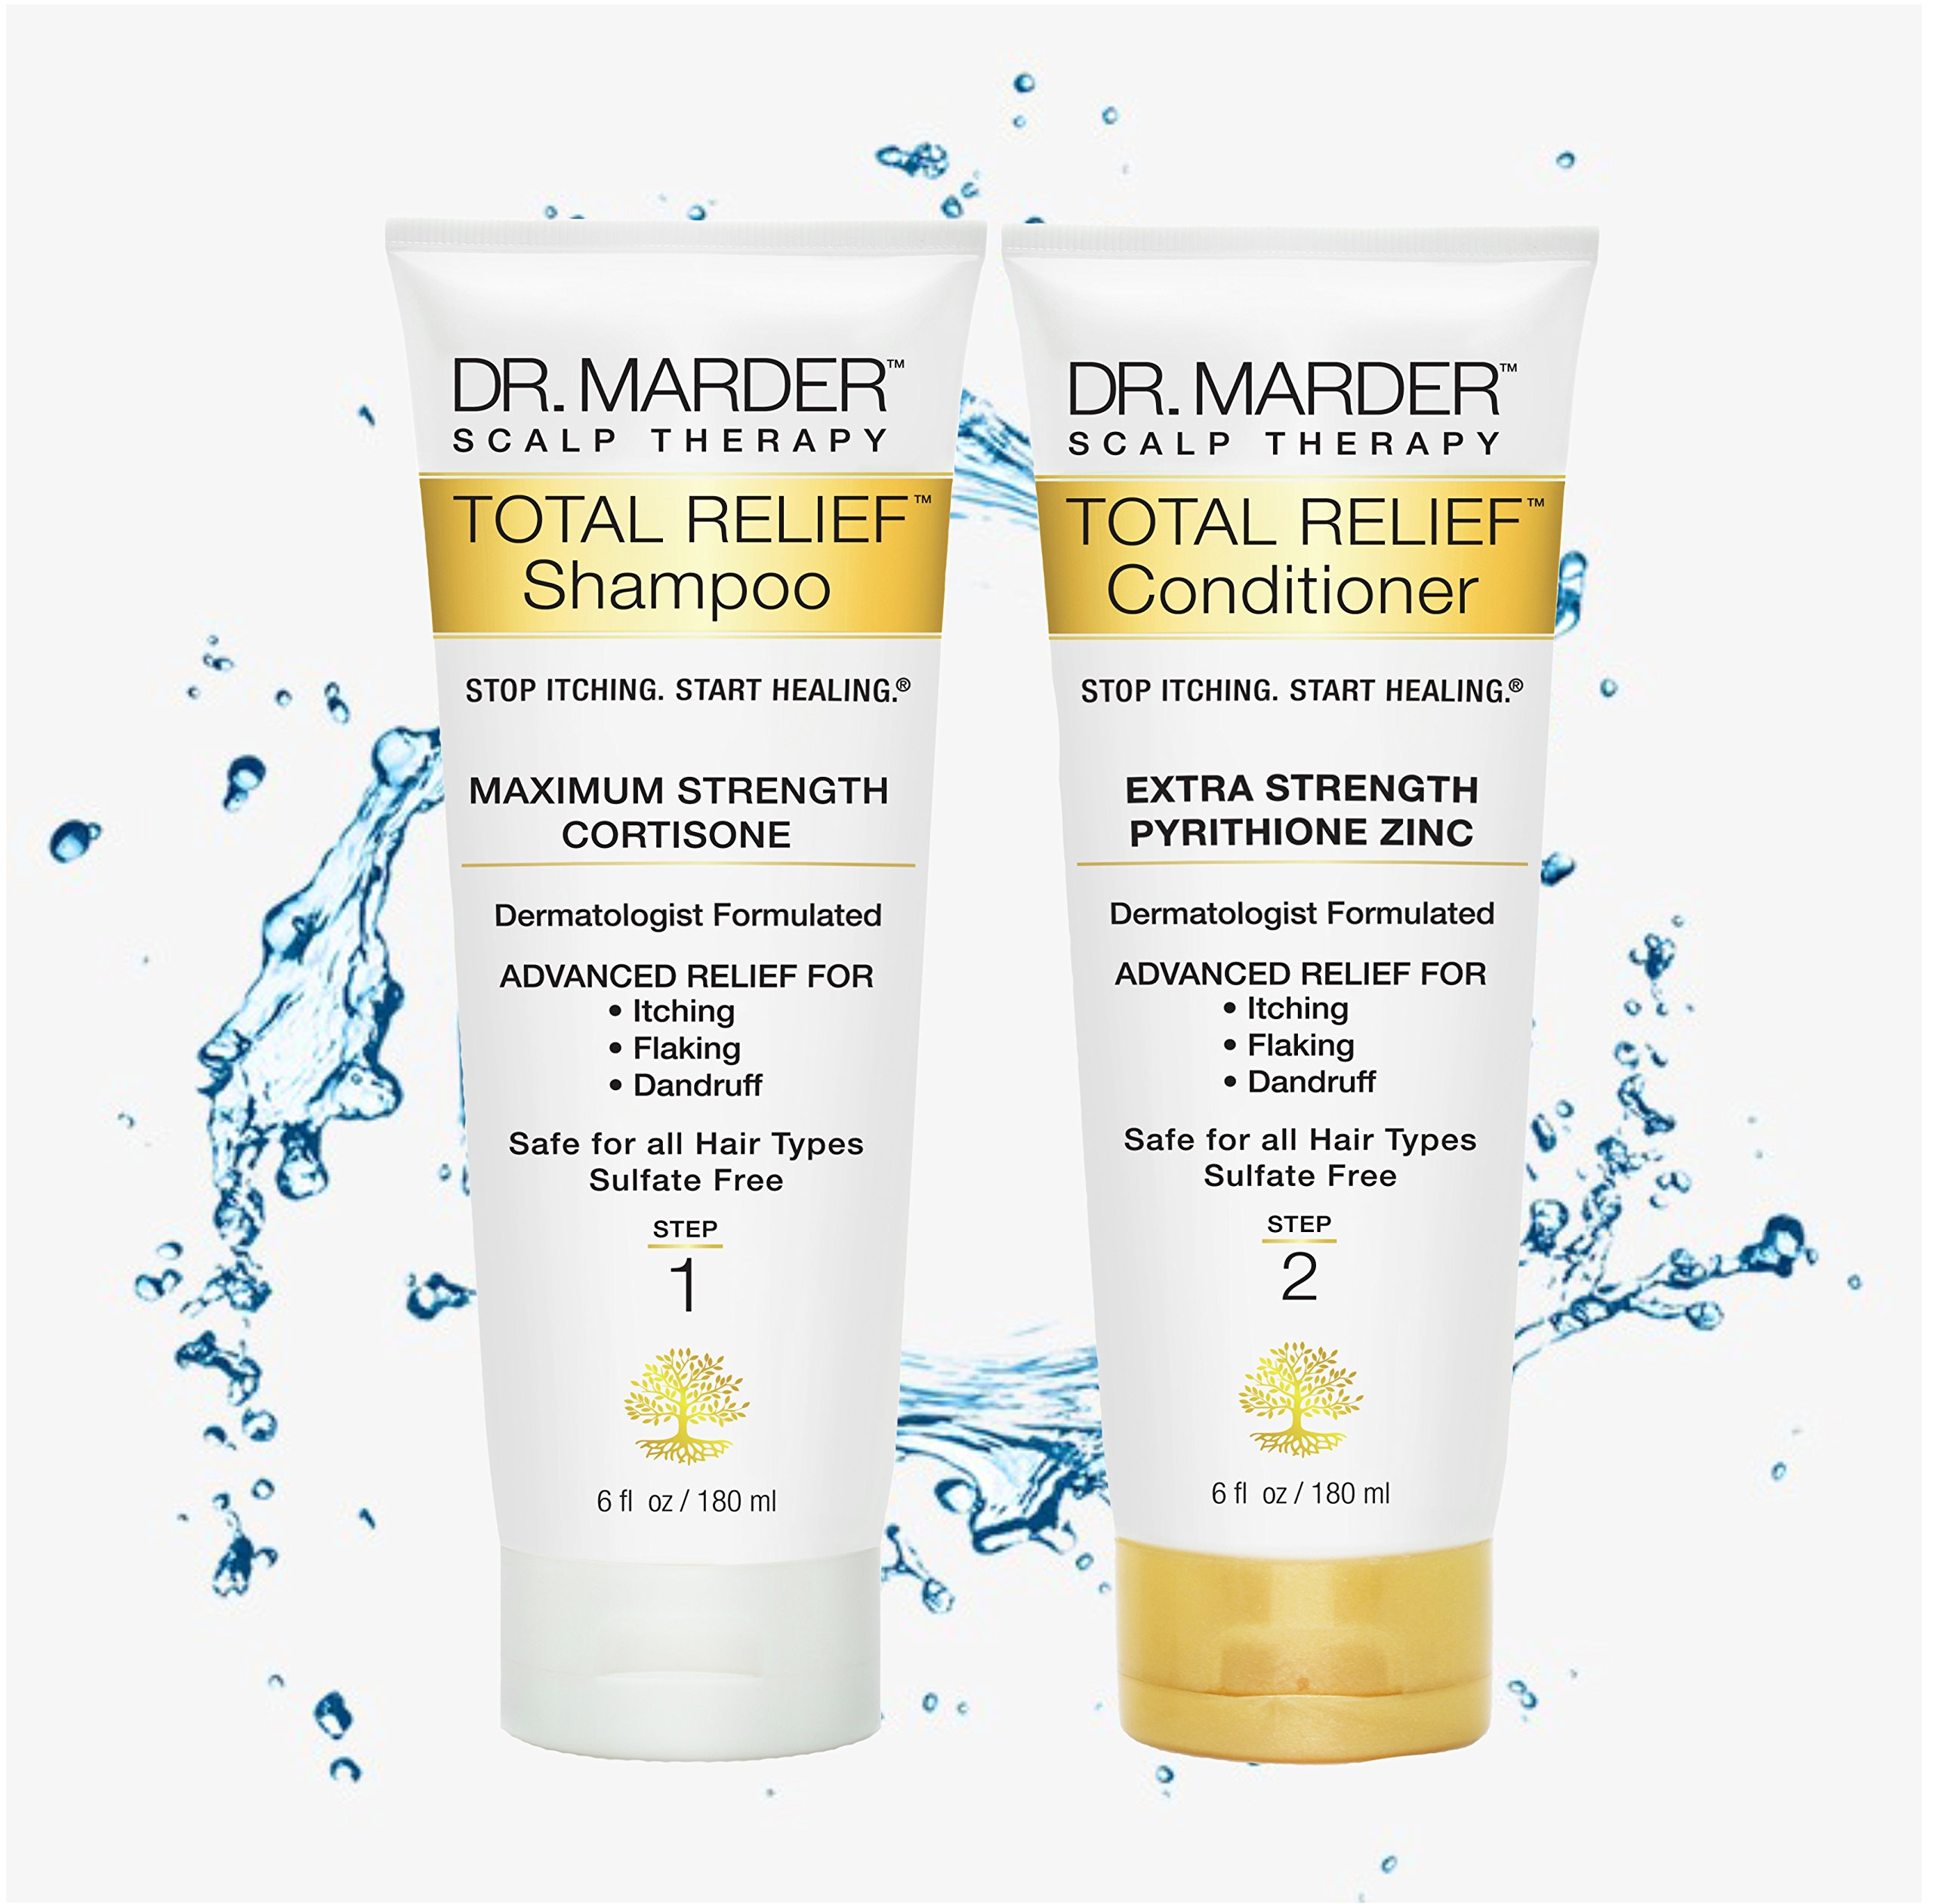 Dr. Marder A-D Anti-Dandruff Psoriasis Cortisone Shampoo & Conditioner Zinc Pyrithione 6 FL OZ (180 mL) Per Bottle - 2 Piece Set - Medicated Hair Loss Shampoo and Conditioner - Treat Psoriasis Flakes by STOP ITCHING. START HEALING.